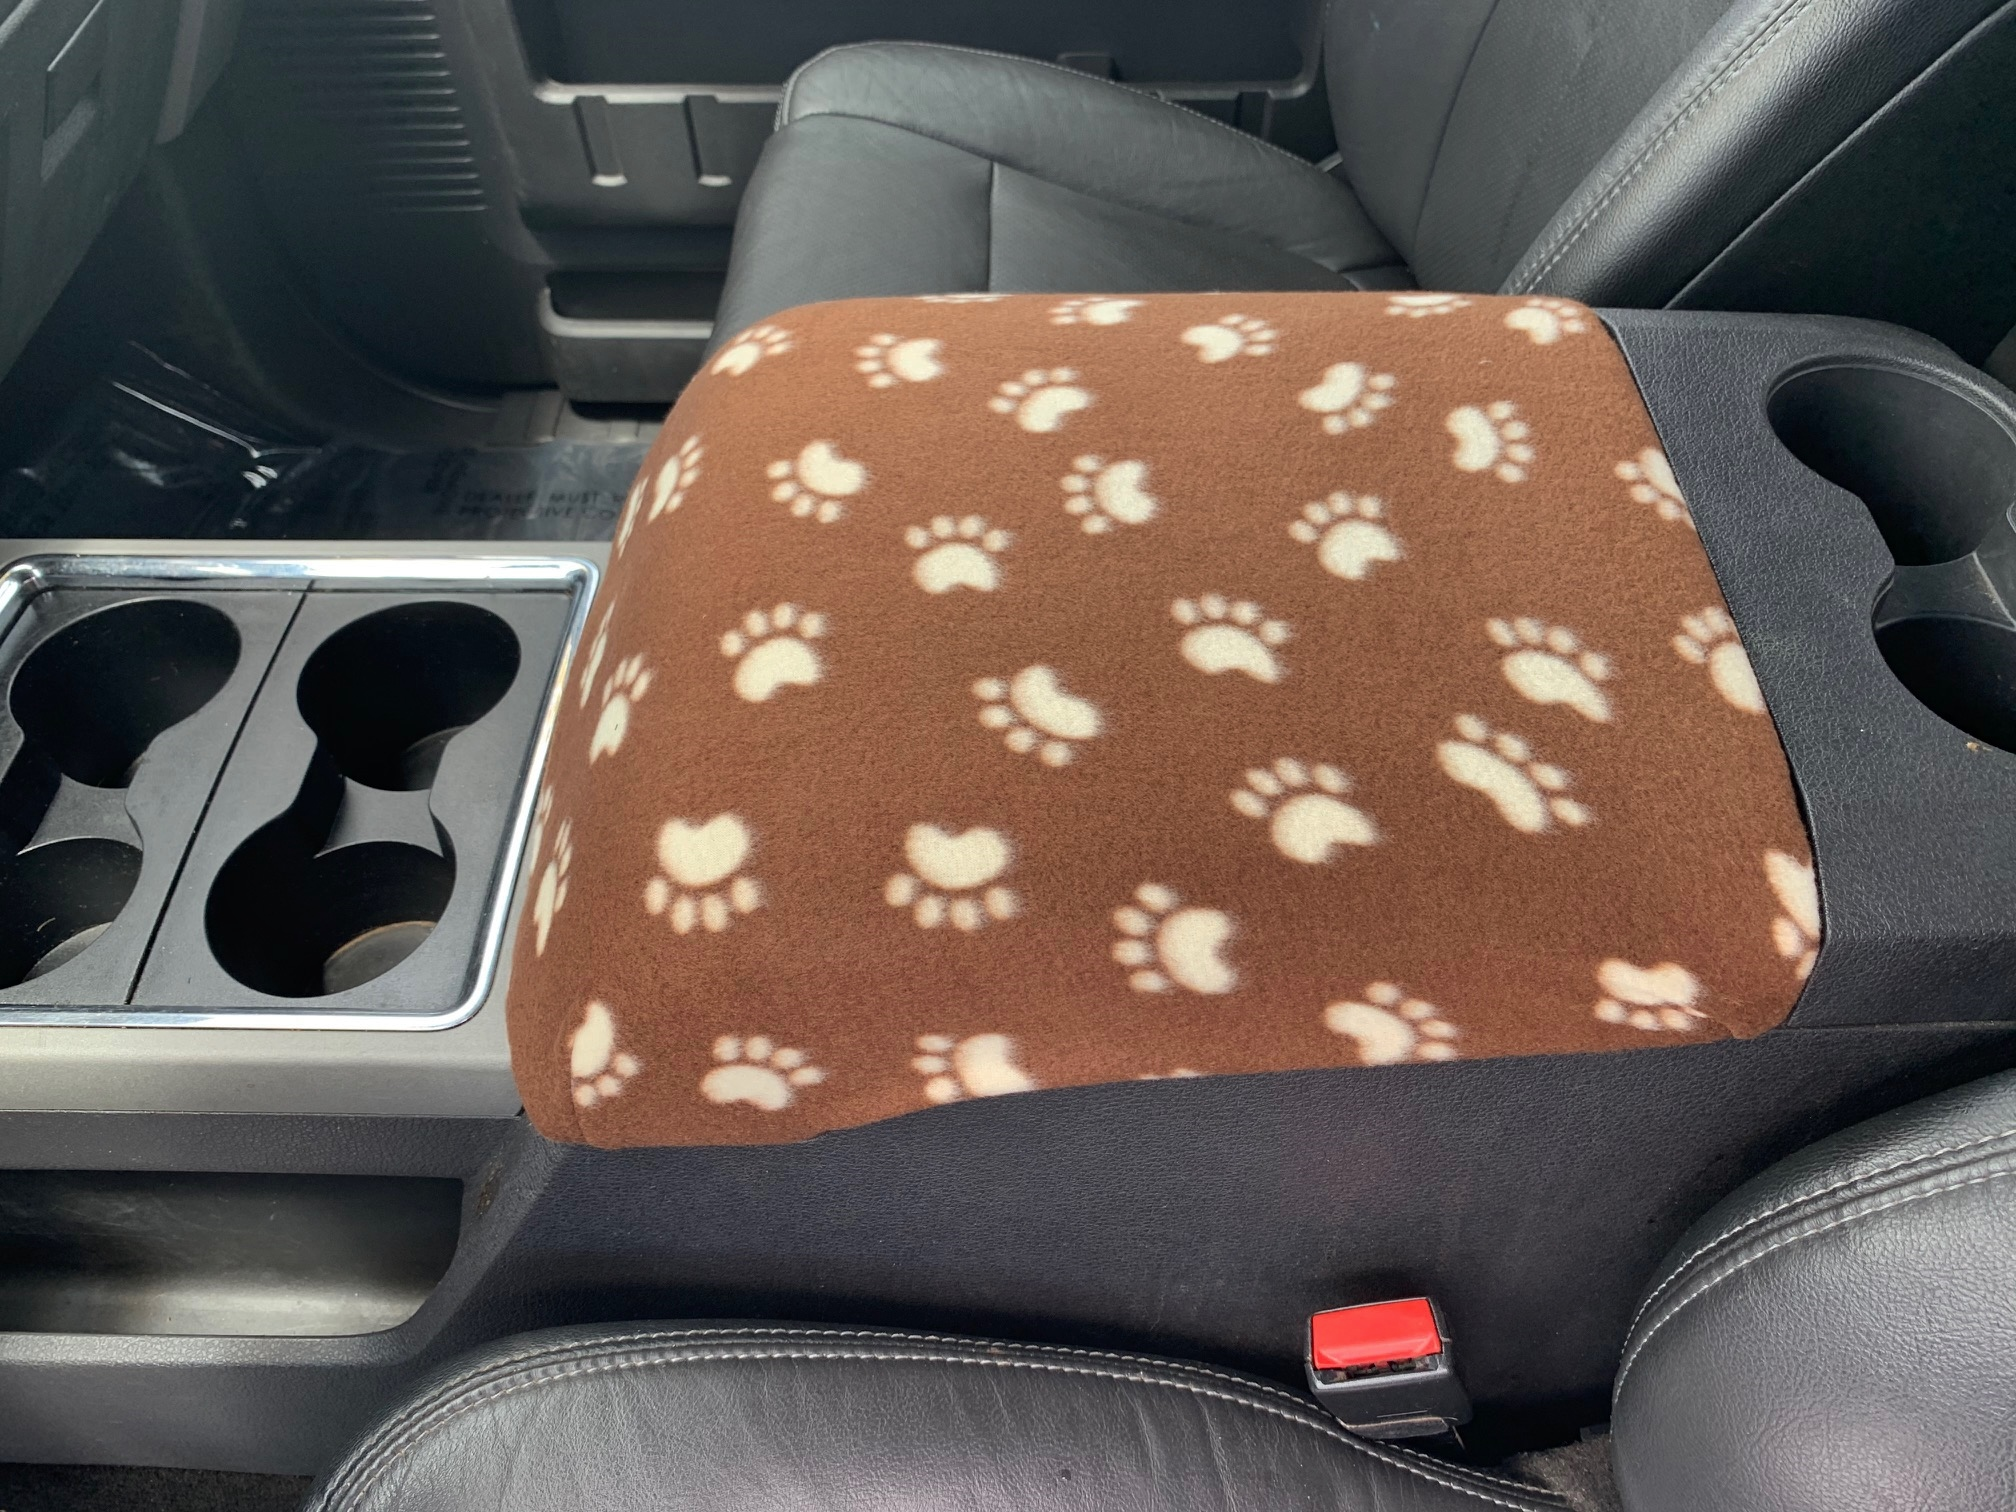 Buy Fleece Center Console Armrest Cover fits the Ford F-350 Super Duty 2011-2016